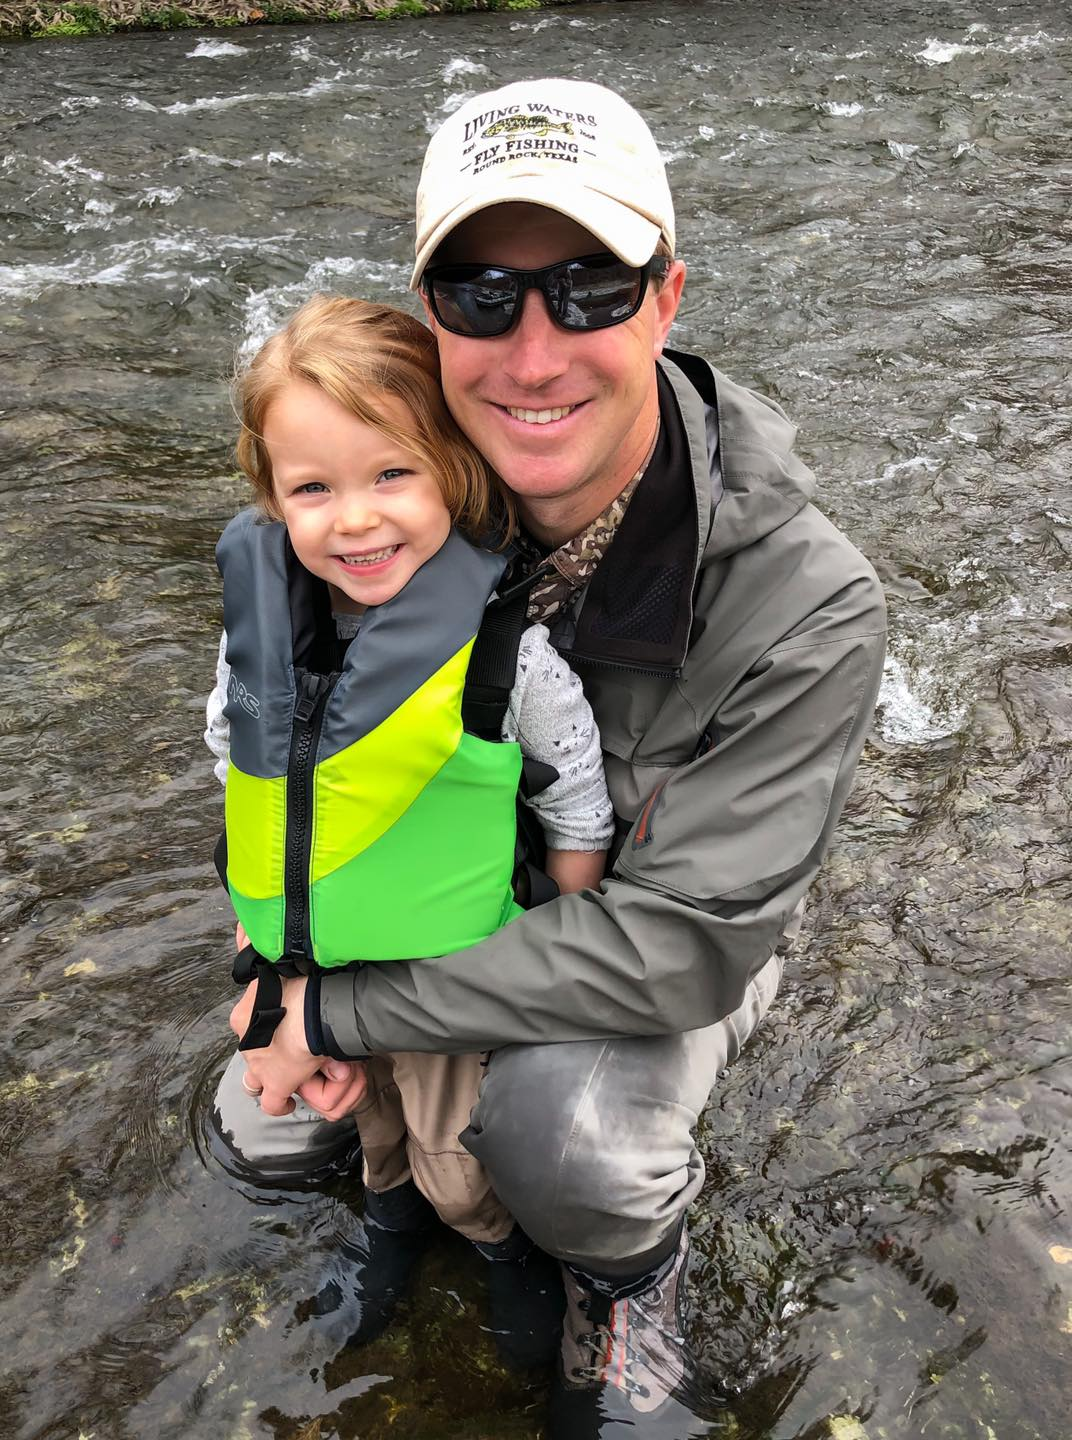 April 6 speaker: Chris Johnson, Fly Fishing the Texas Hill Country